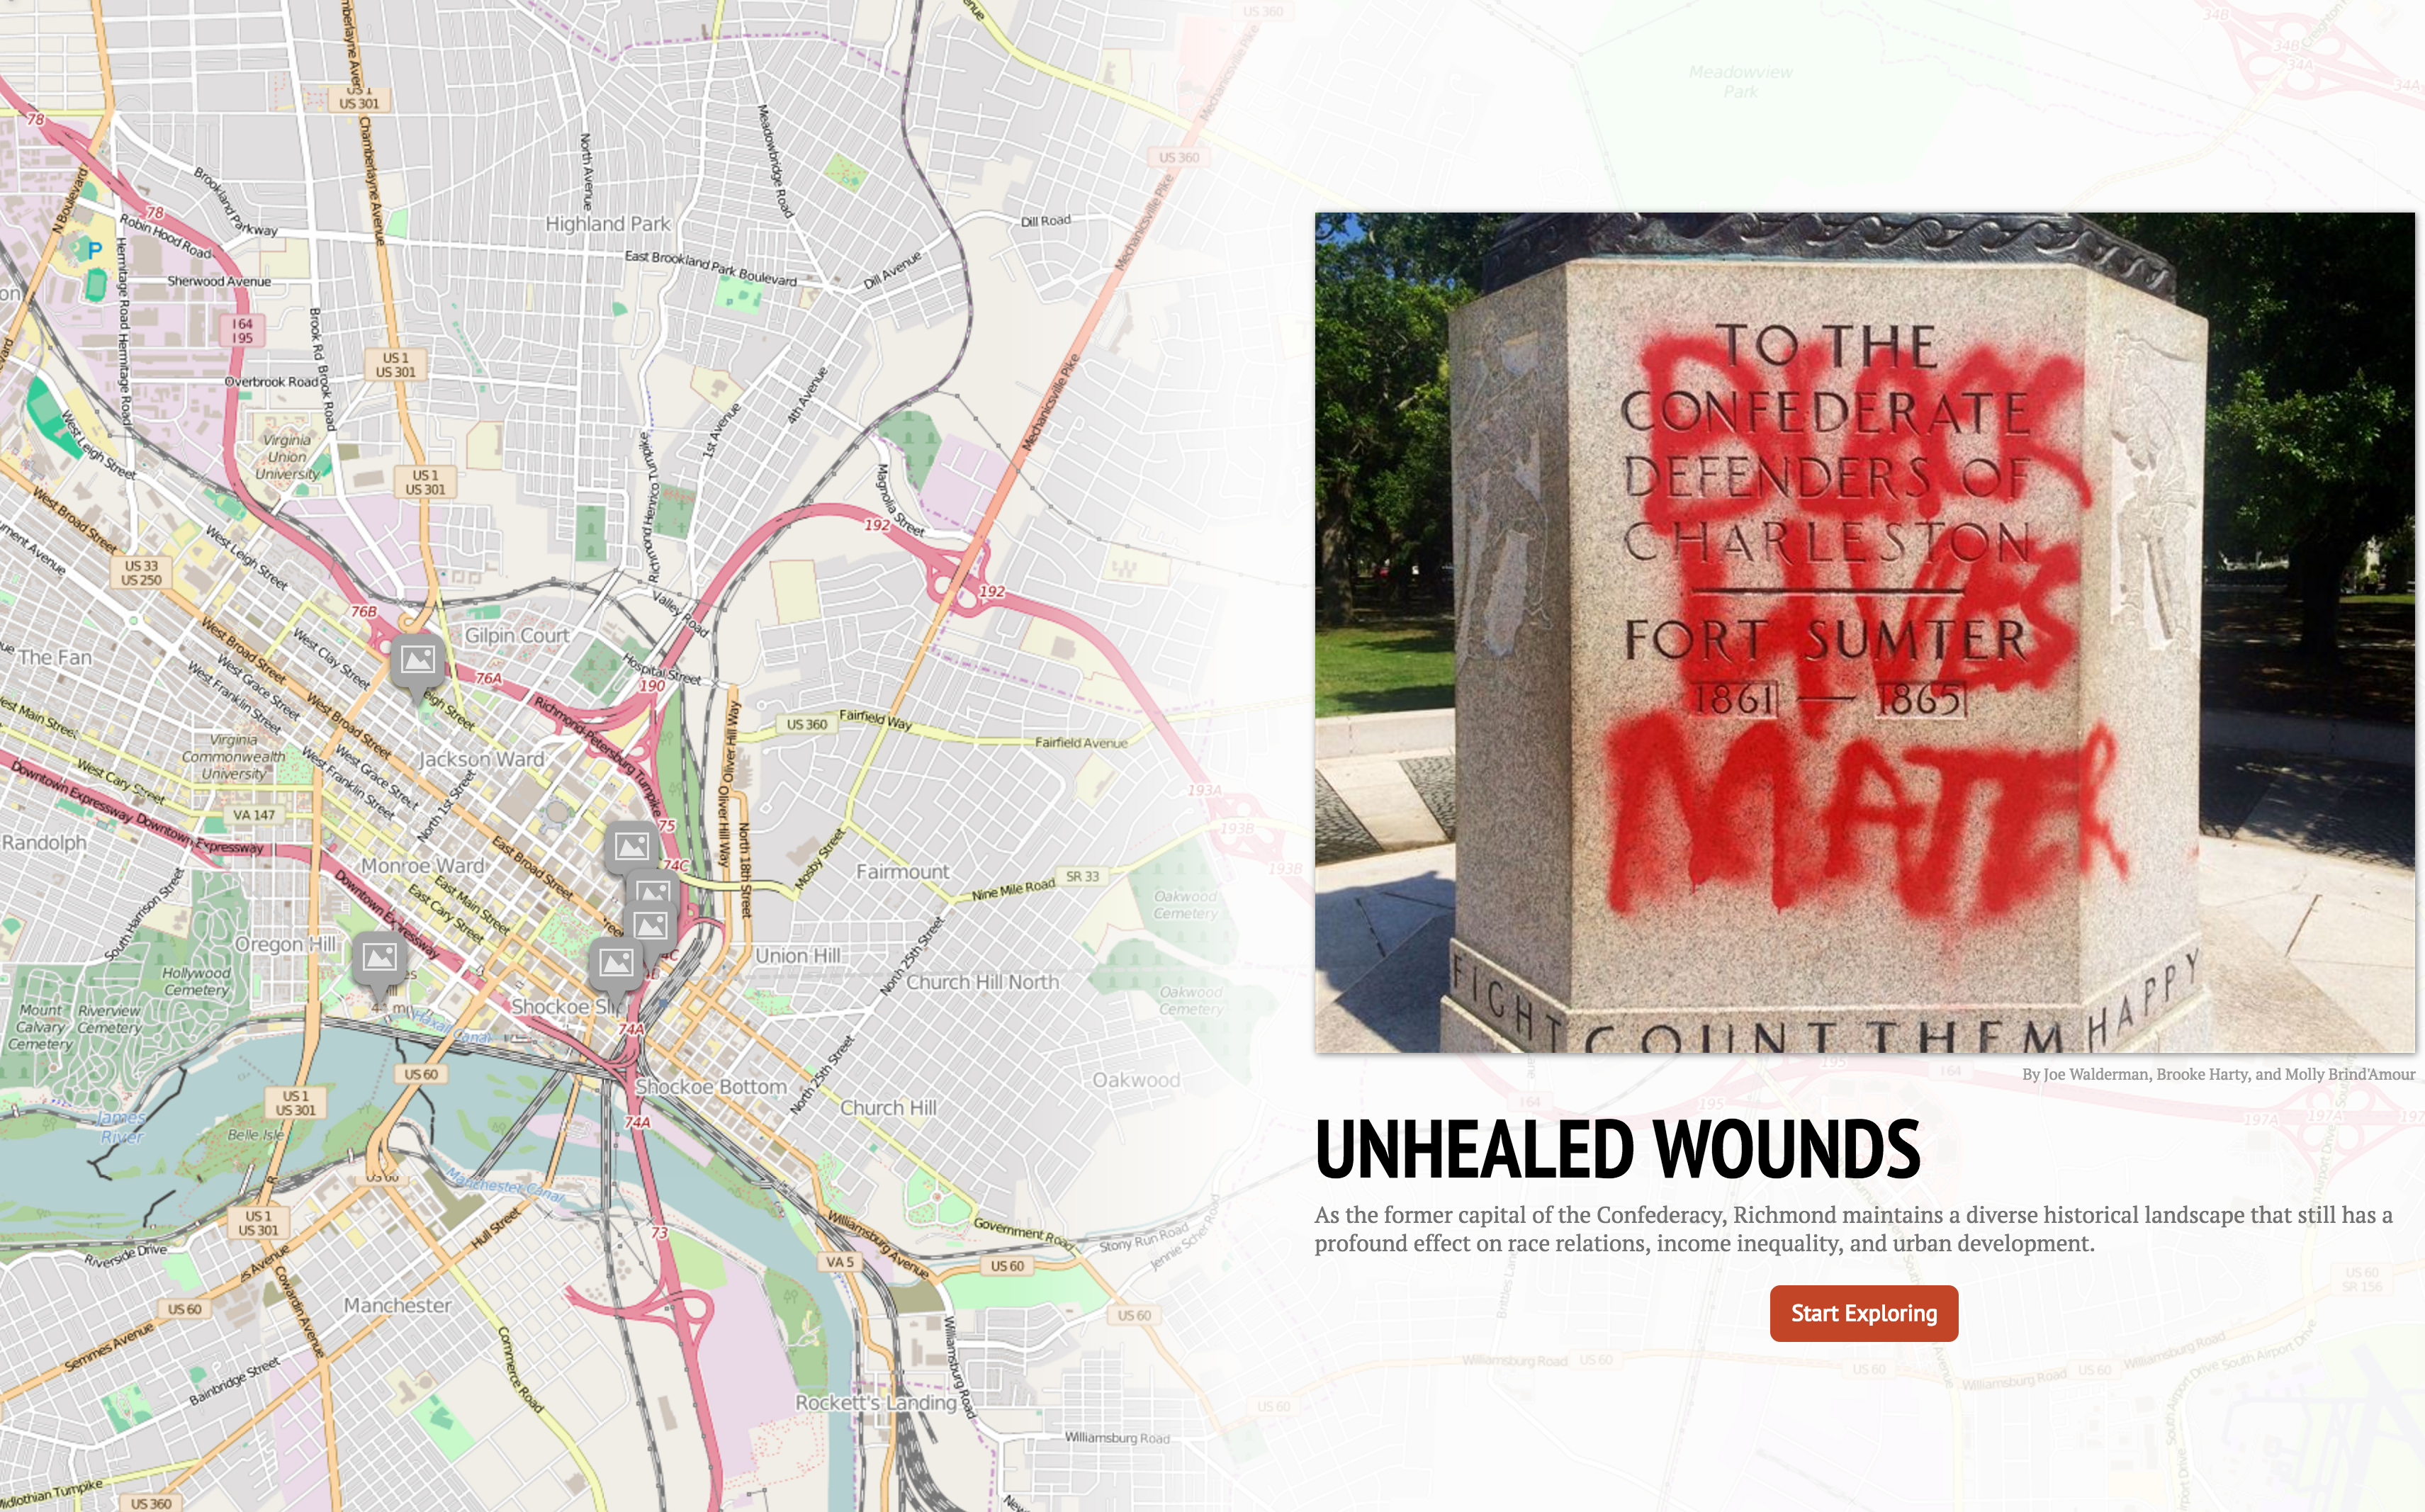 Unhealed Wounds map